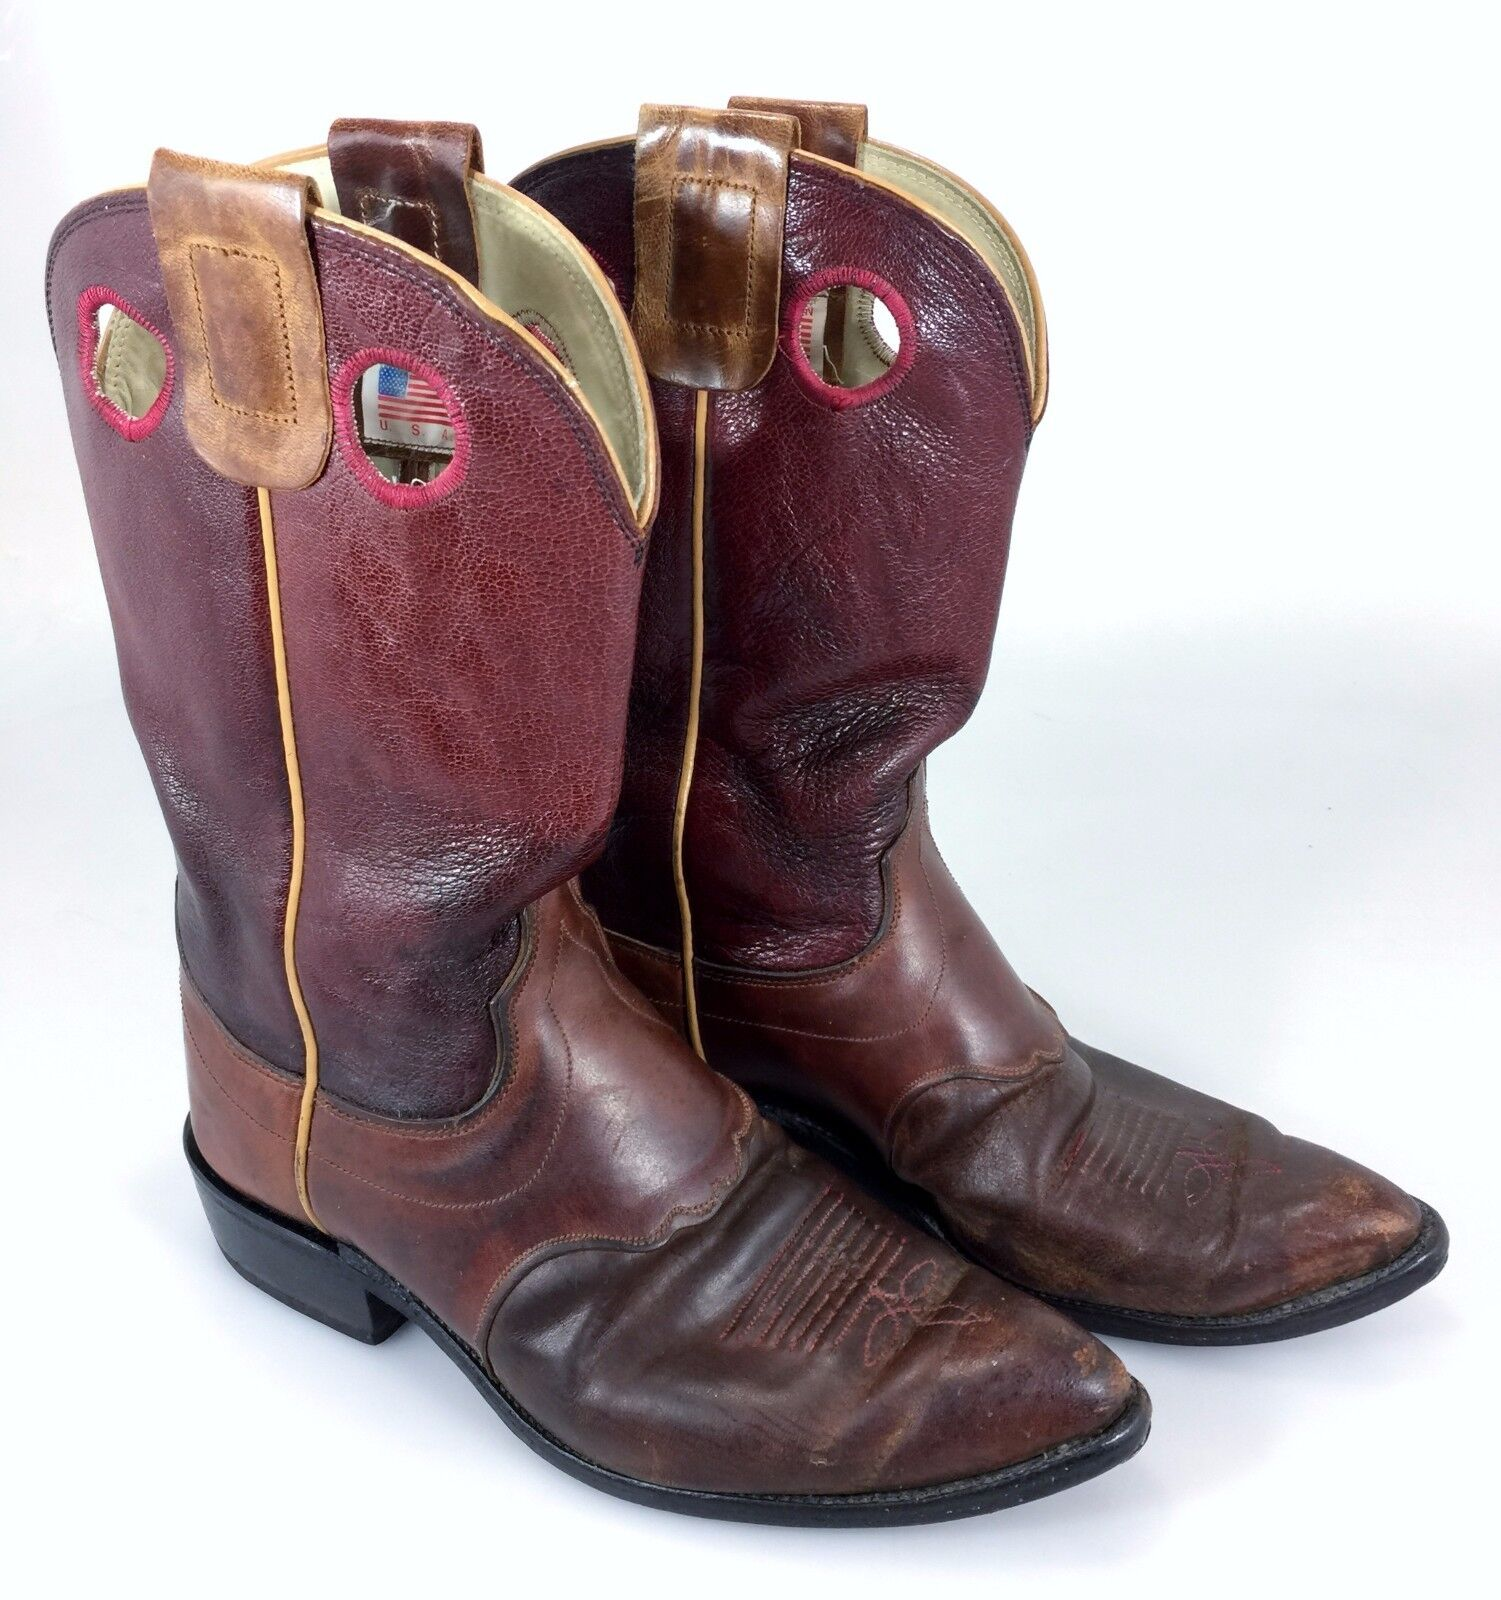 Olathe Cowboy Stiefel 7C Damenschuhe Burgundy Leder Wide Made in USA